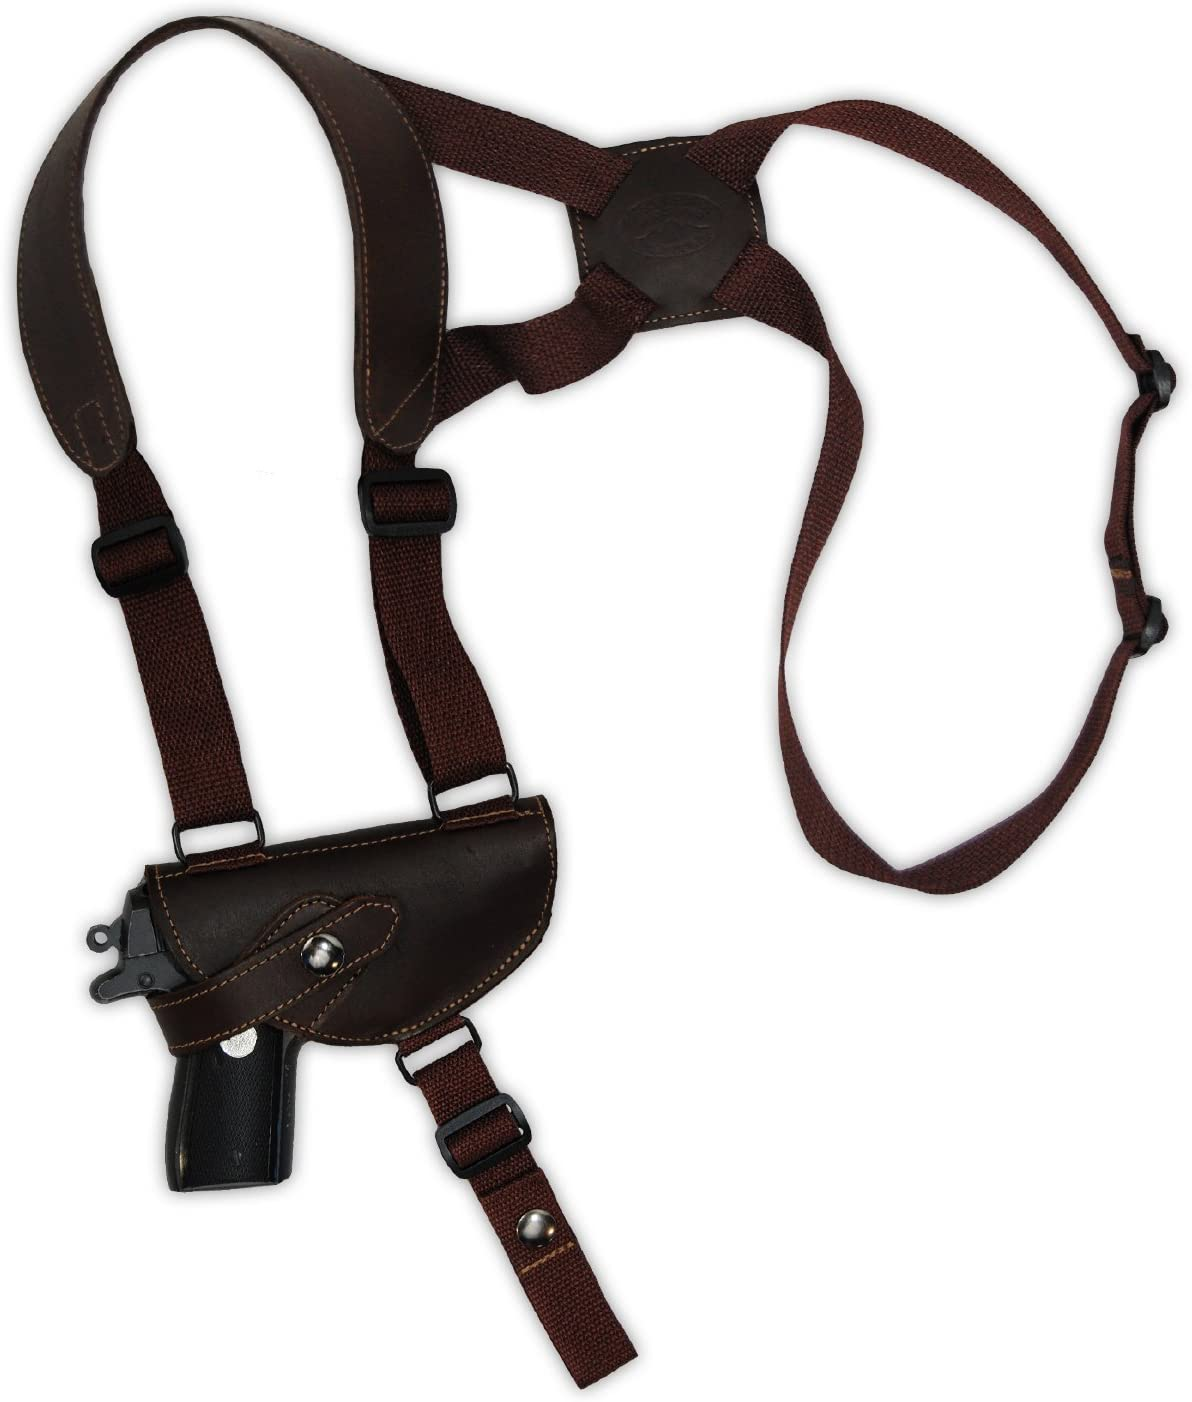 Barsony Brown Leather Cross Harness Shoulder Holster for Small 3